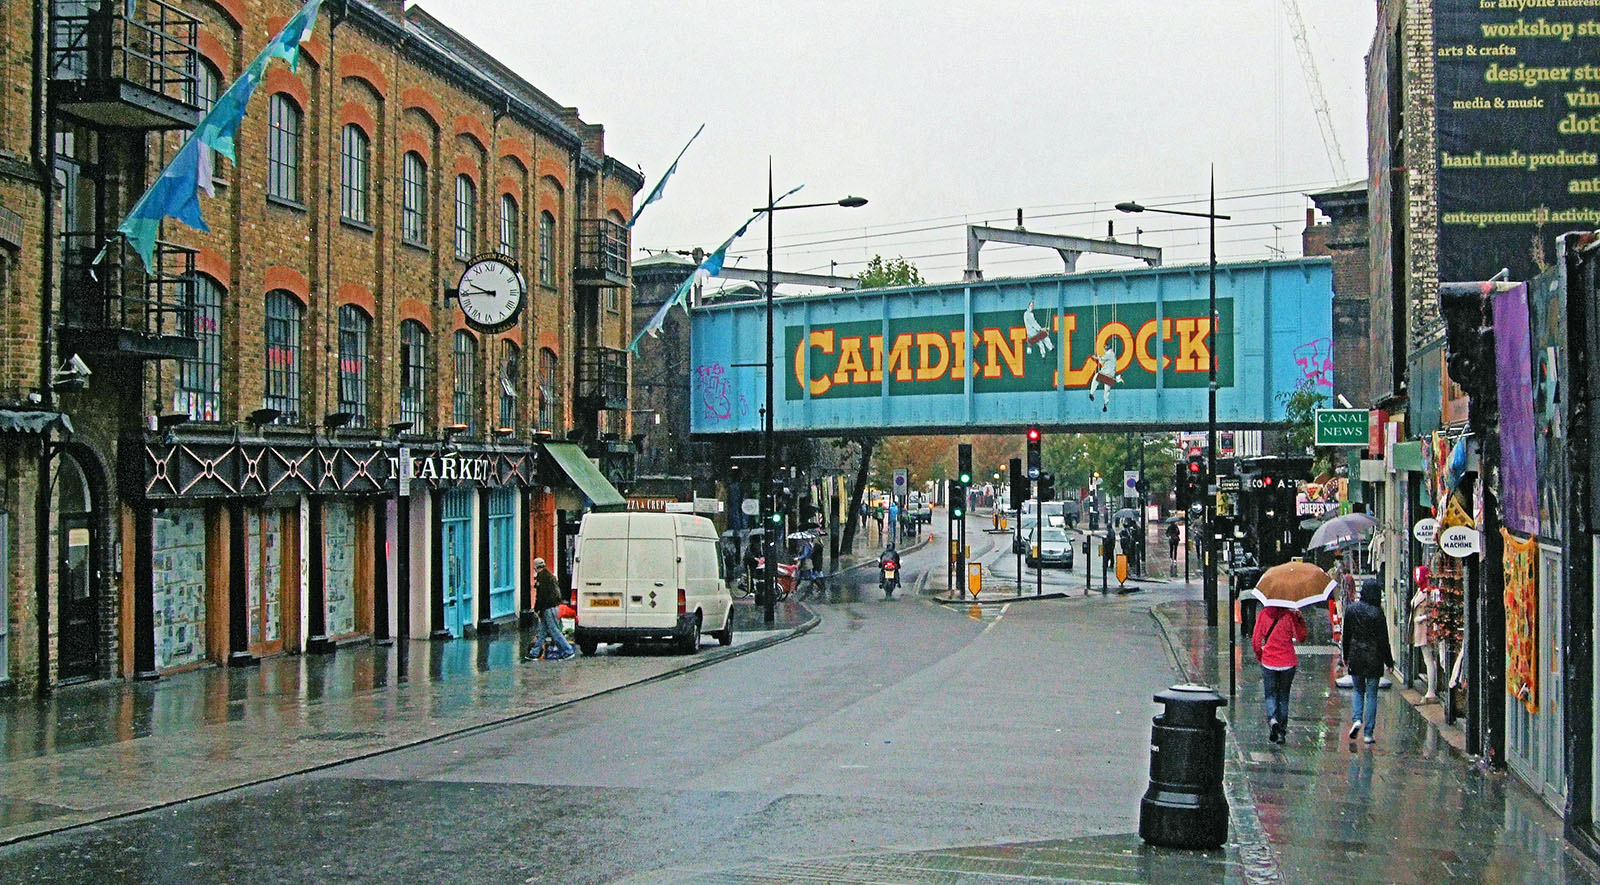 The famous Camden Lock bridge.